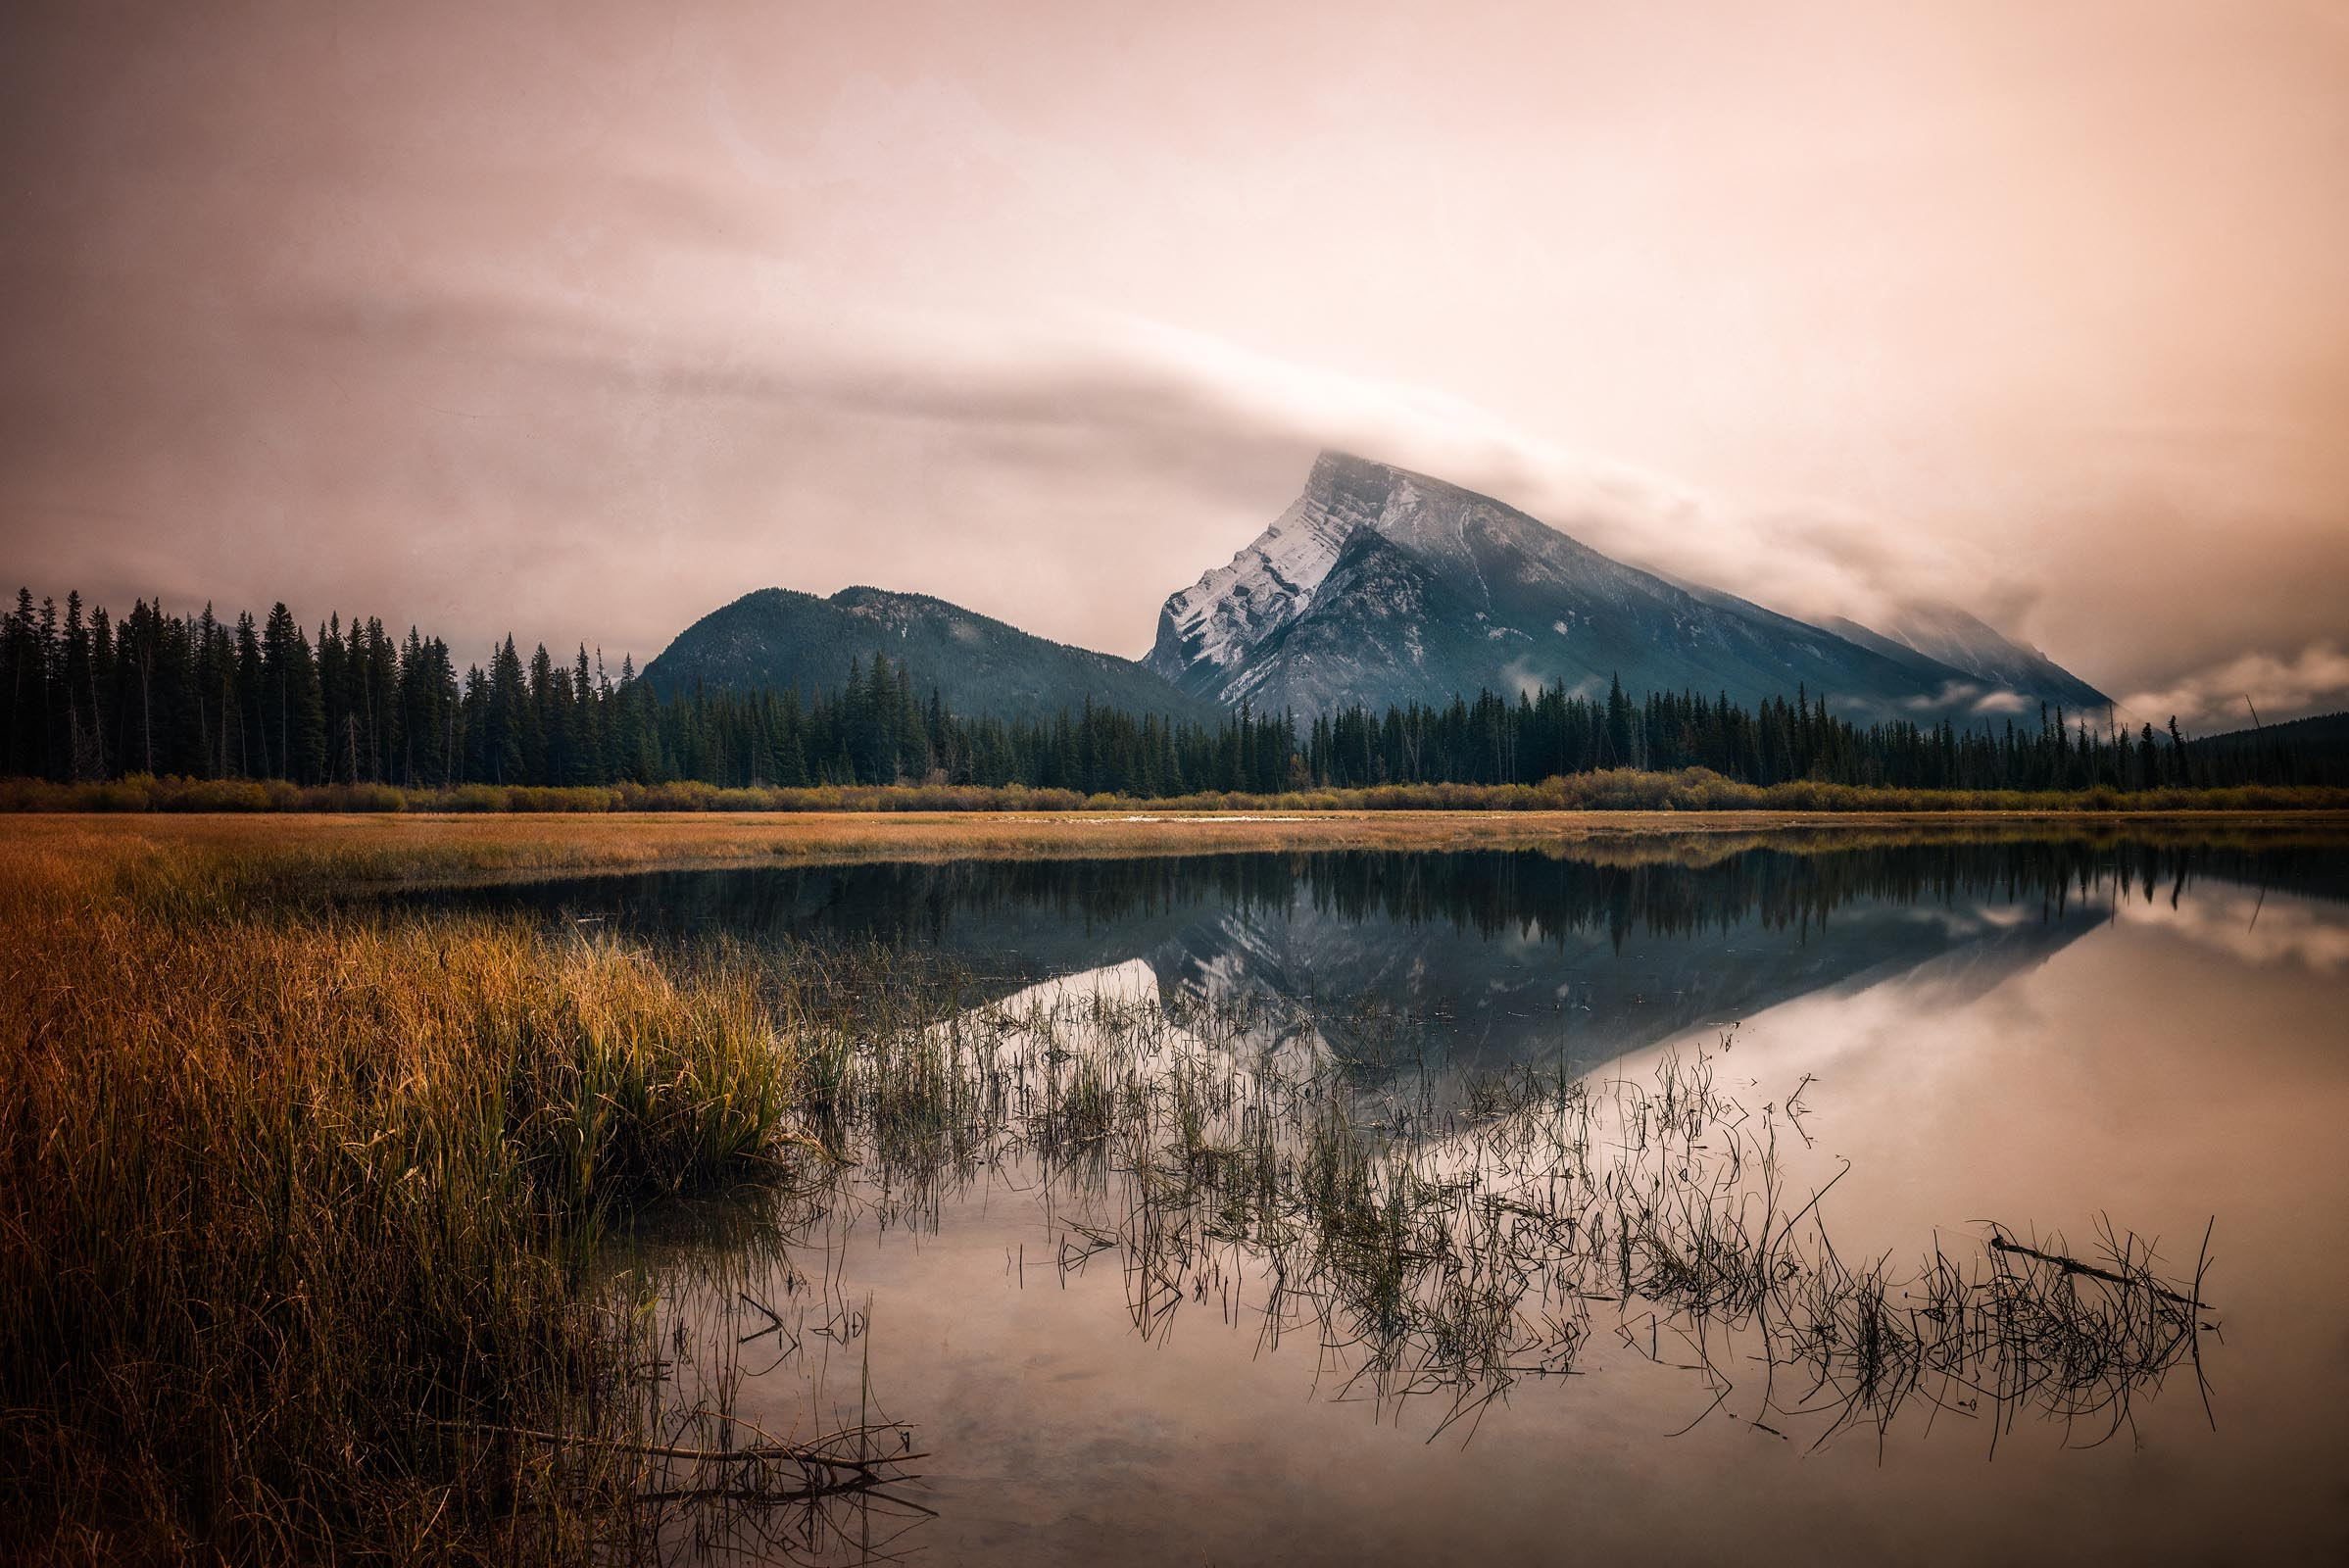 Photograph of Vermilion Lakes in Banff, Canada by Brent Goldman Photography